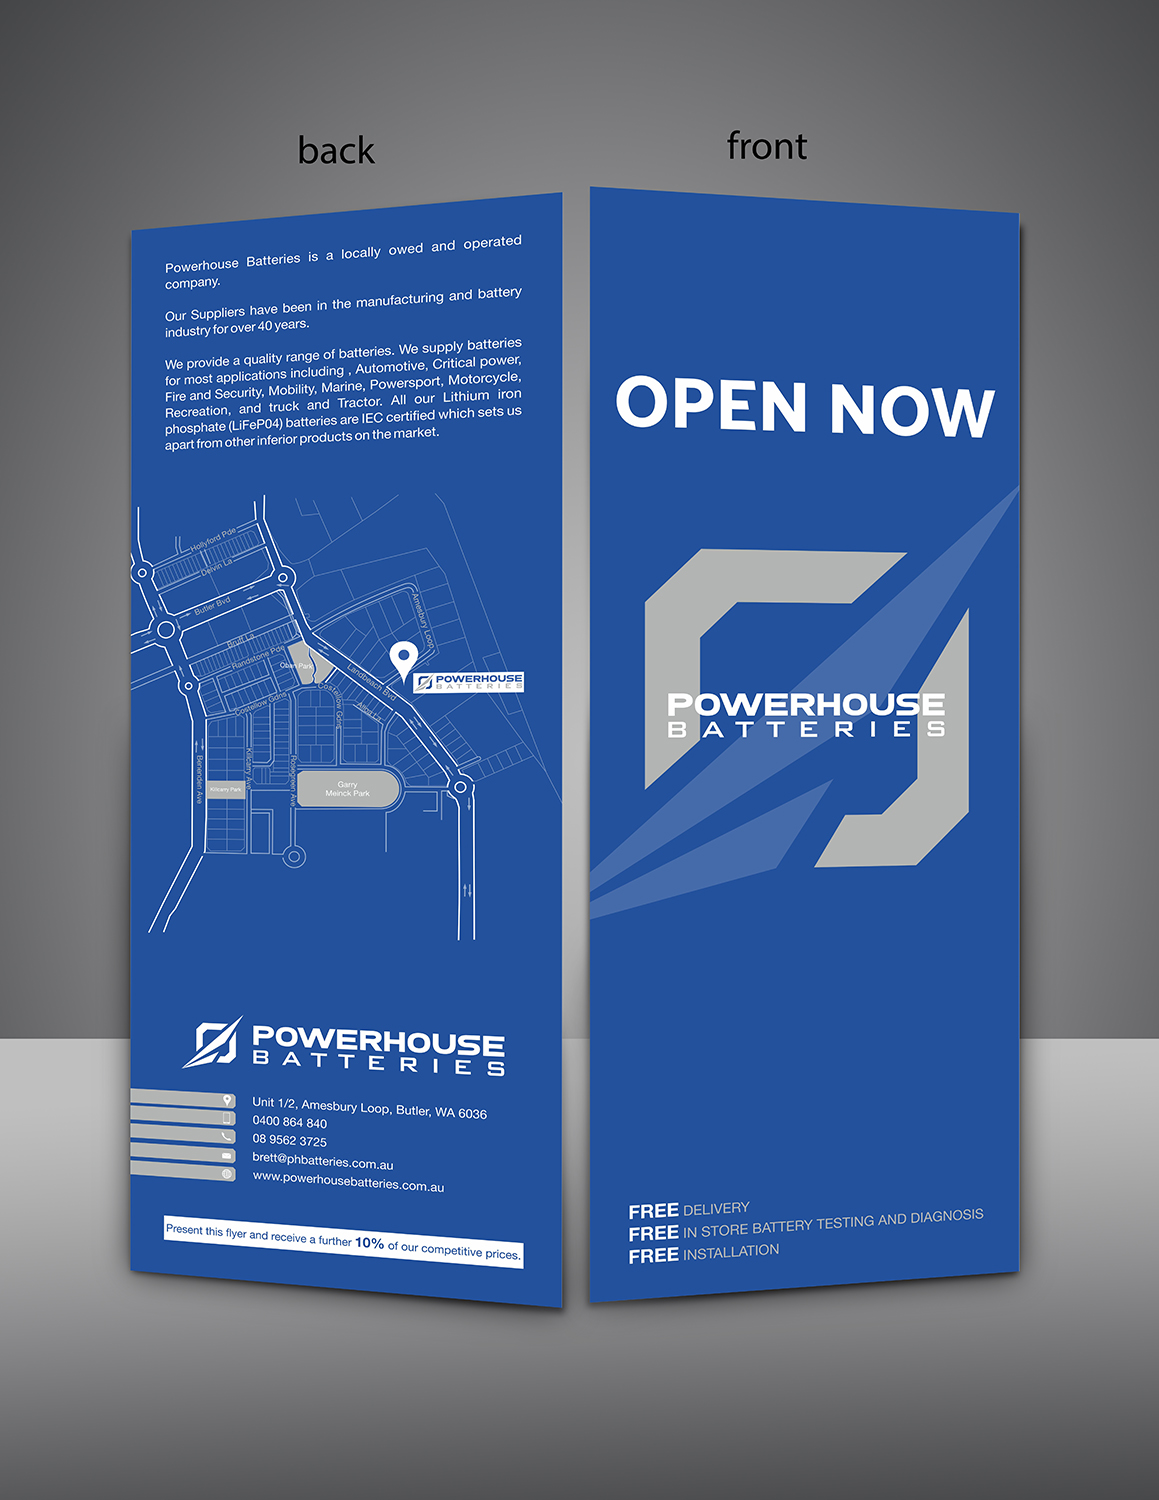 Modern Professional Automotive Flyer Design For Powerhouse Batteries Pty Ltd By Hamm Design 19600477